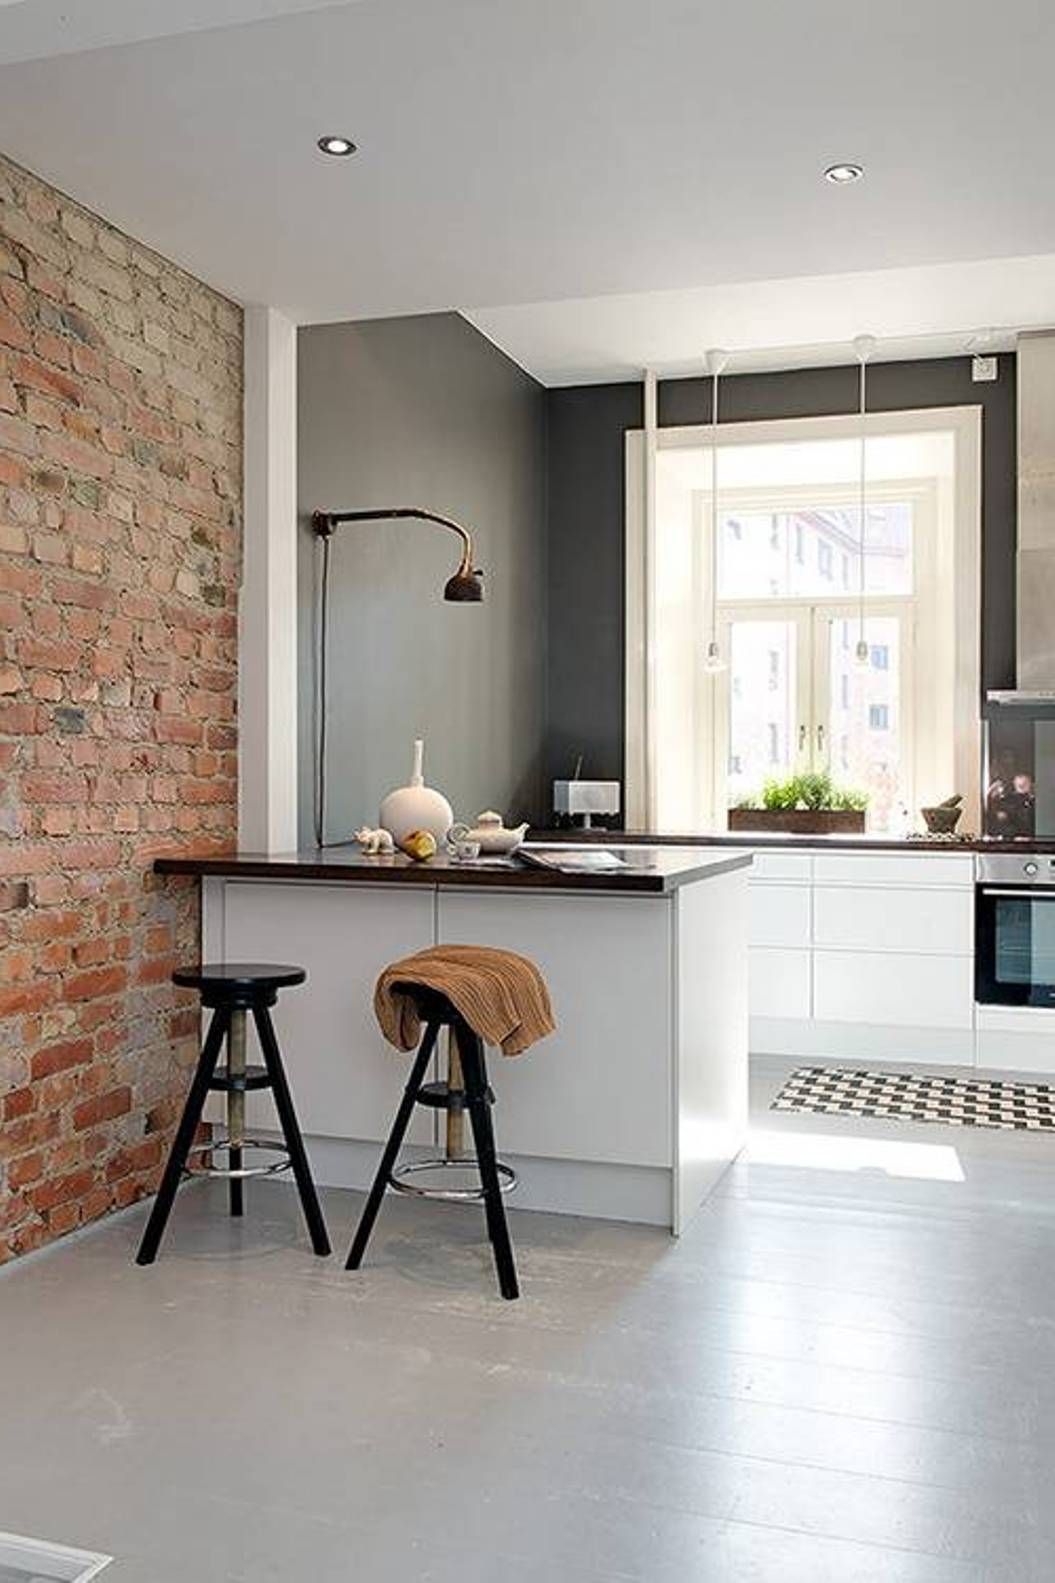 28 Small Kitchen Design Ideas - The WoW Style on Tiny Kitchen Remodel Ideas  id=65483